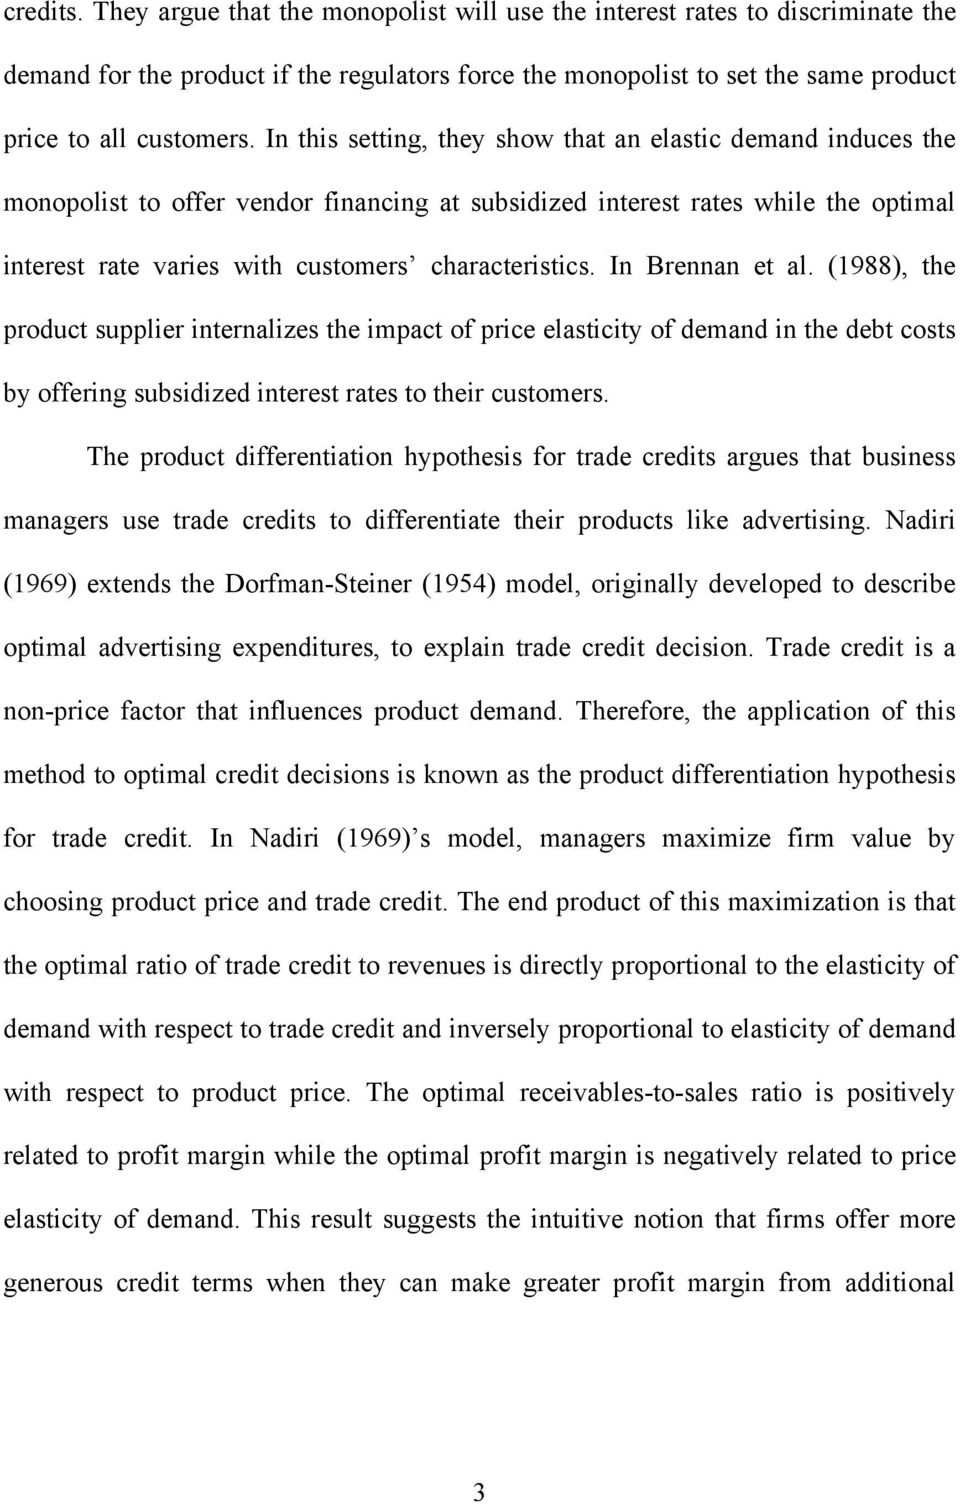 In Brennan et al. (1988), the product supplier internalizes the impact of price elasticity of demand in the debt costs by offering subsidized interest rates to their customers.